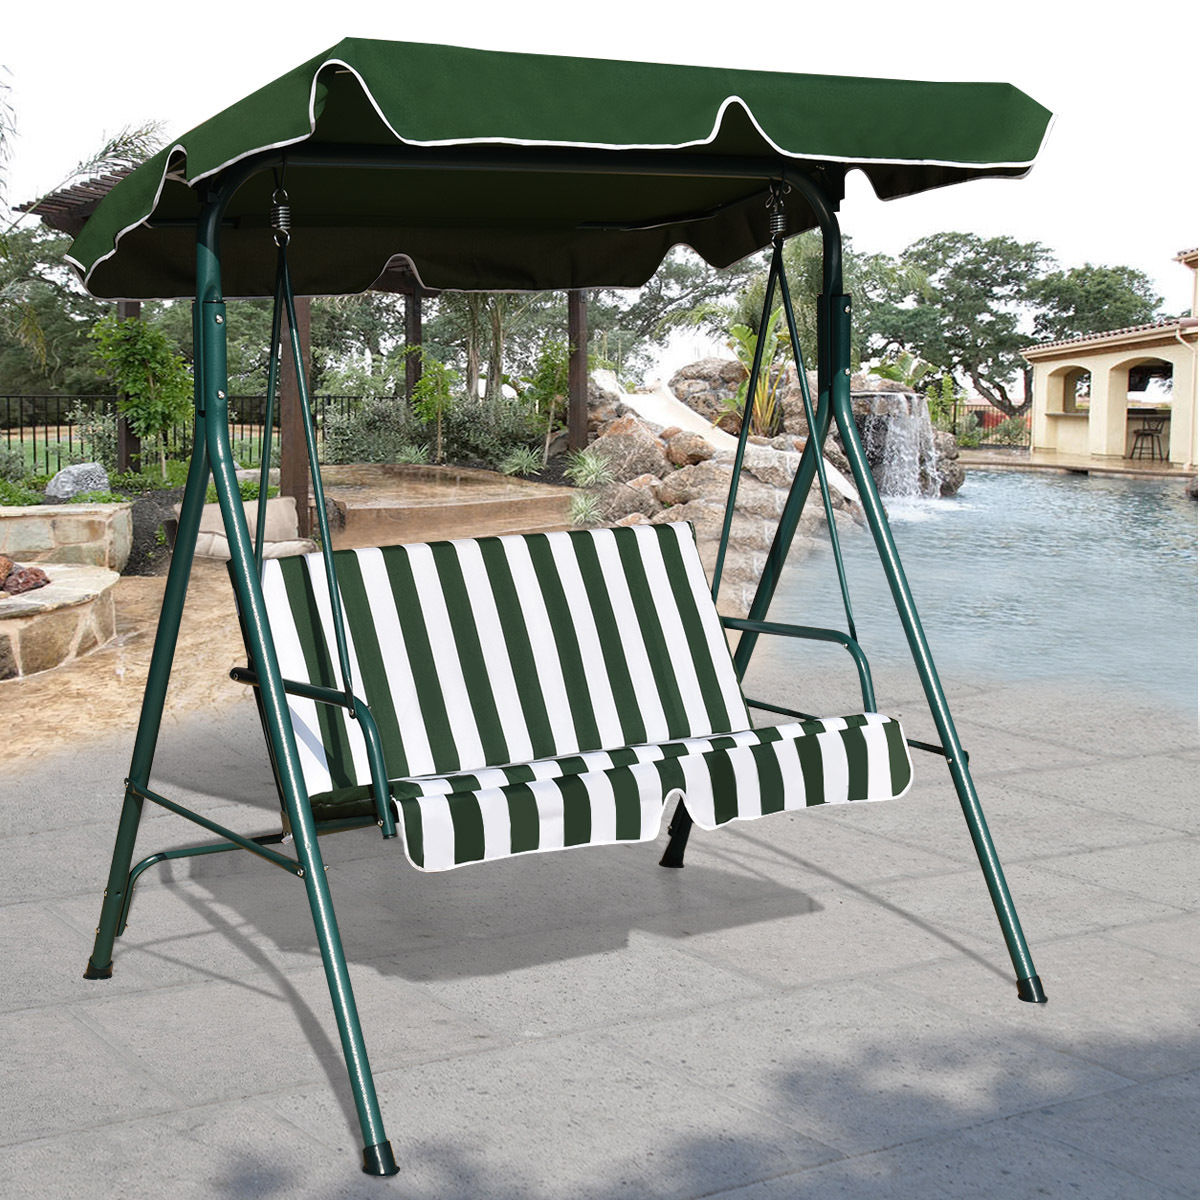 GHP Outdoor Green & White Durable Cushioned Two-Seats Swing Canopy Hammock Chair